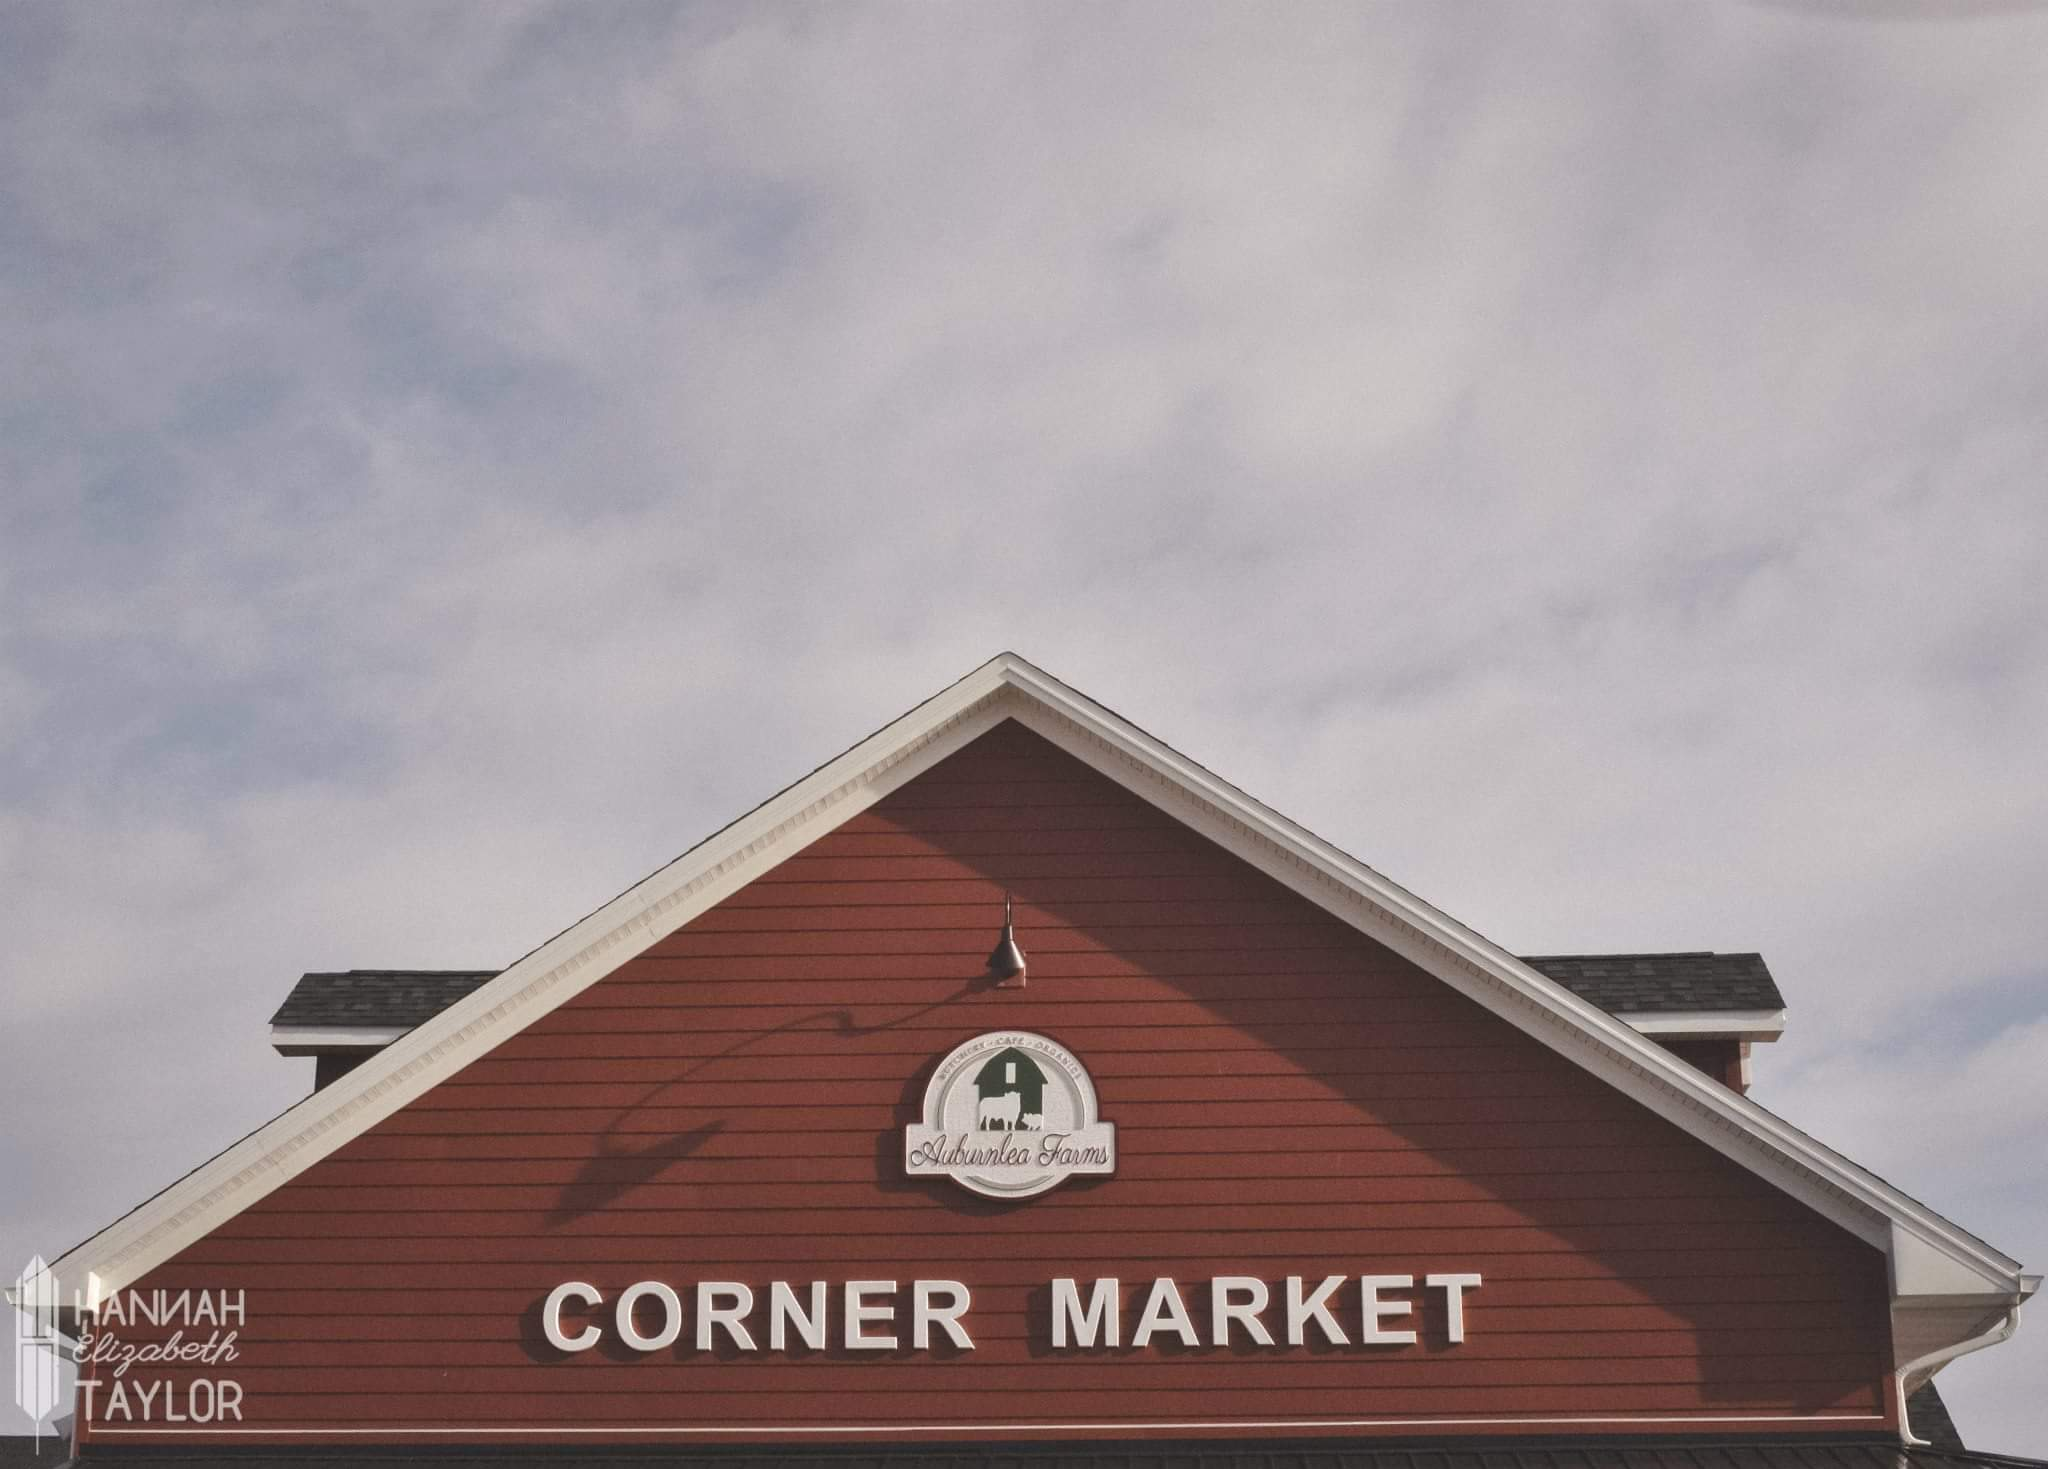 Click here for the story of the Corner Market